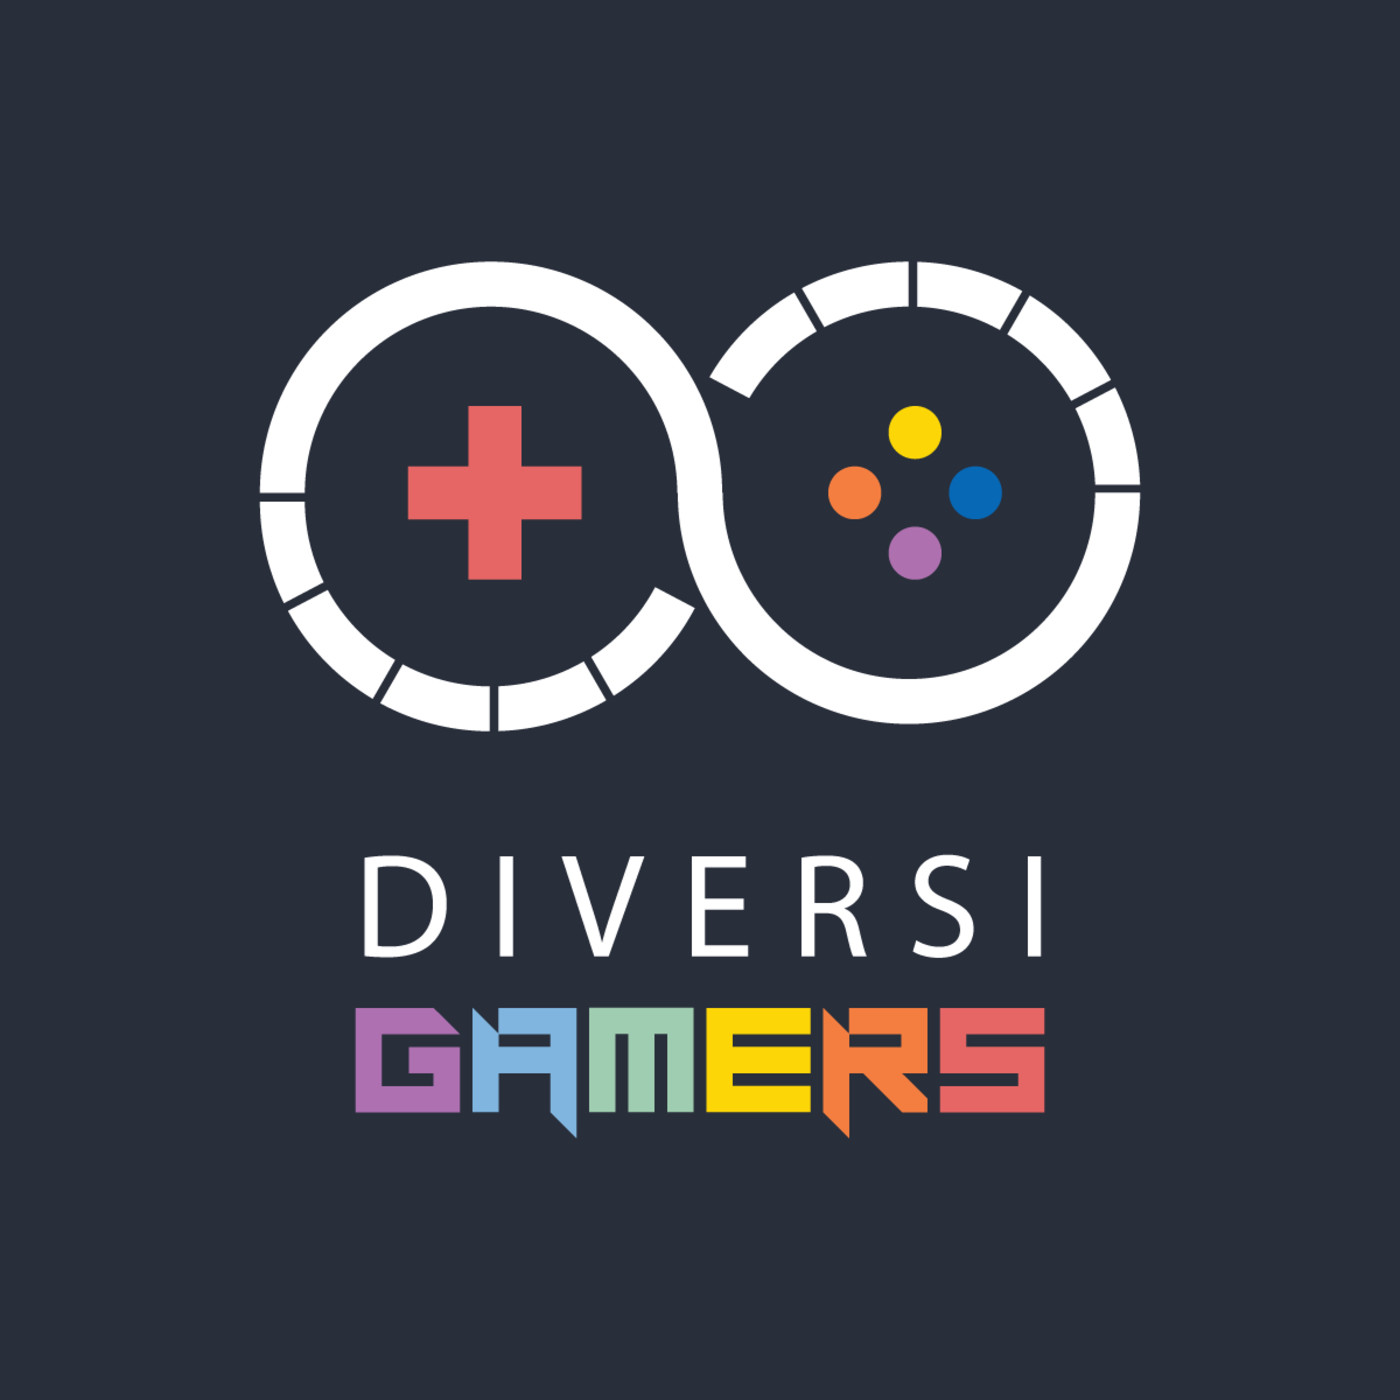 DiversiPodcast